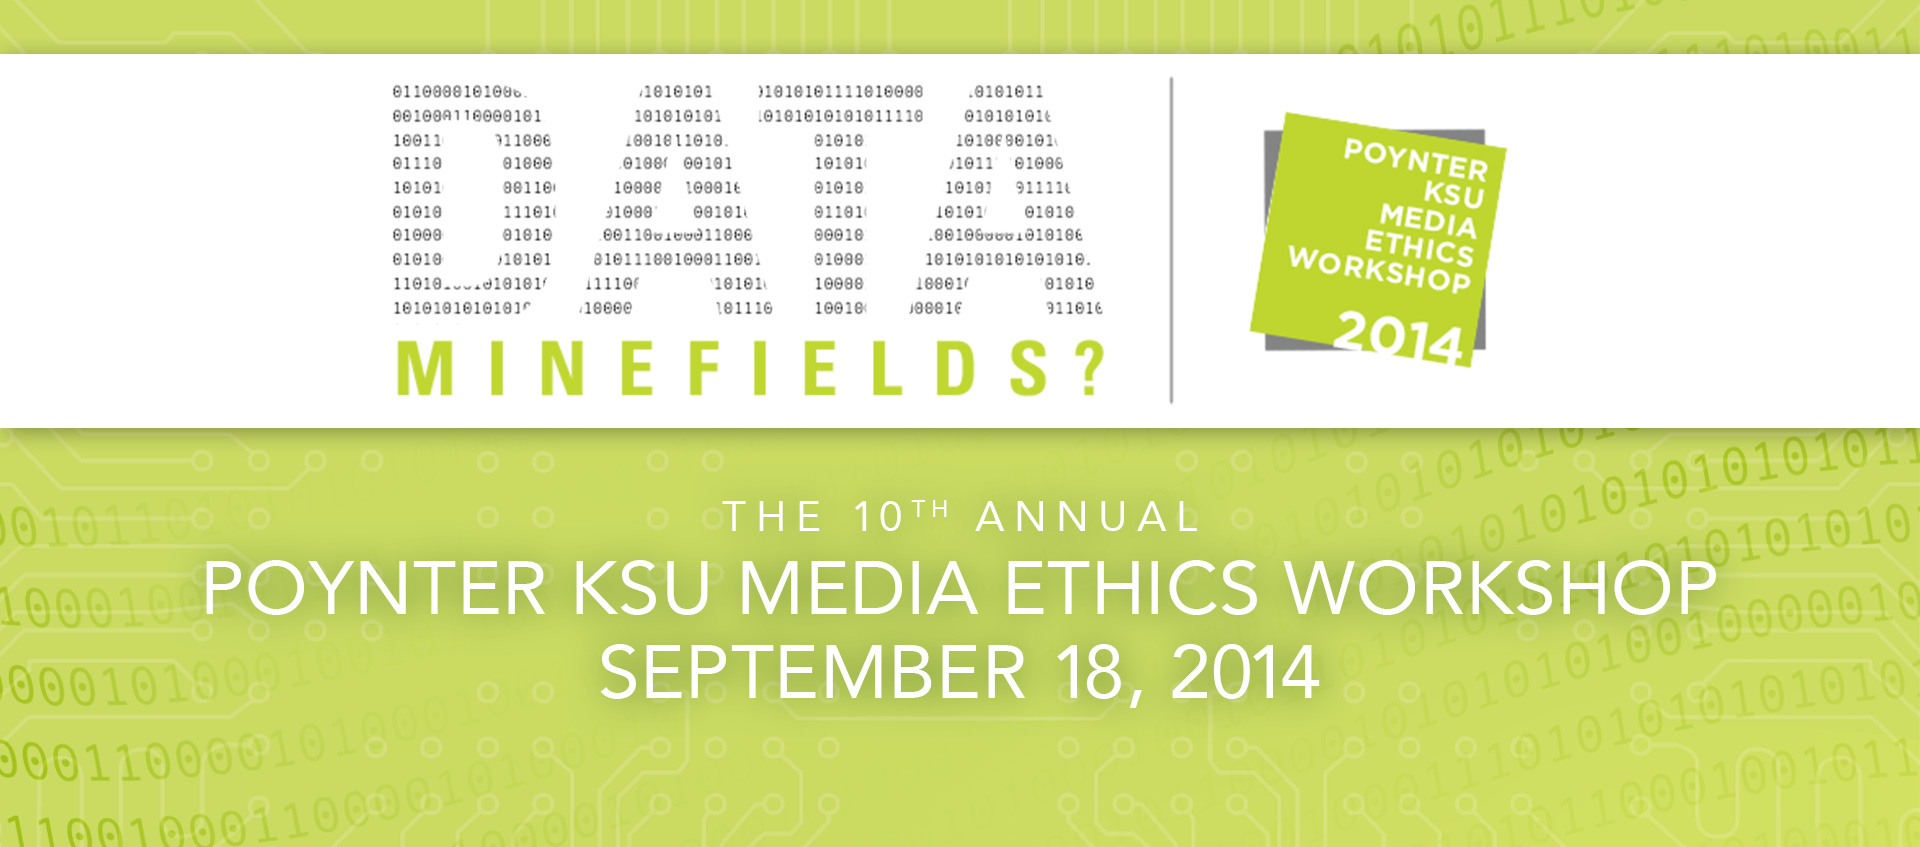 Poynter KSU Media Ethics Workshop